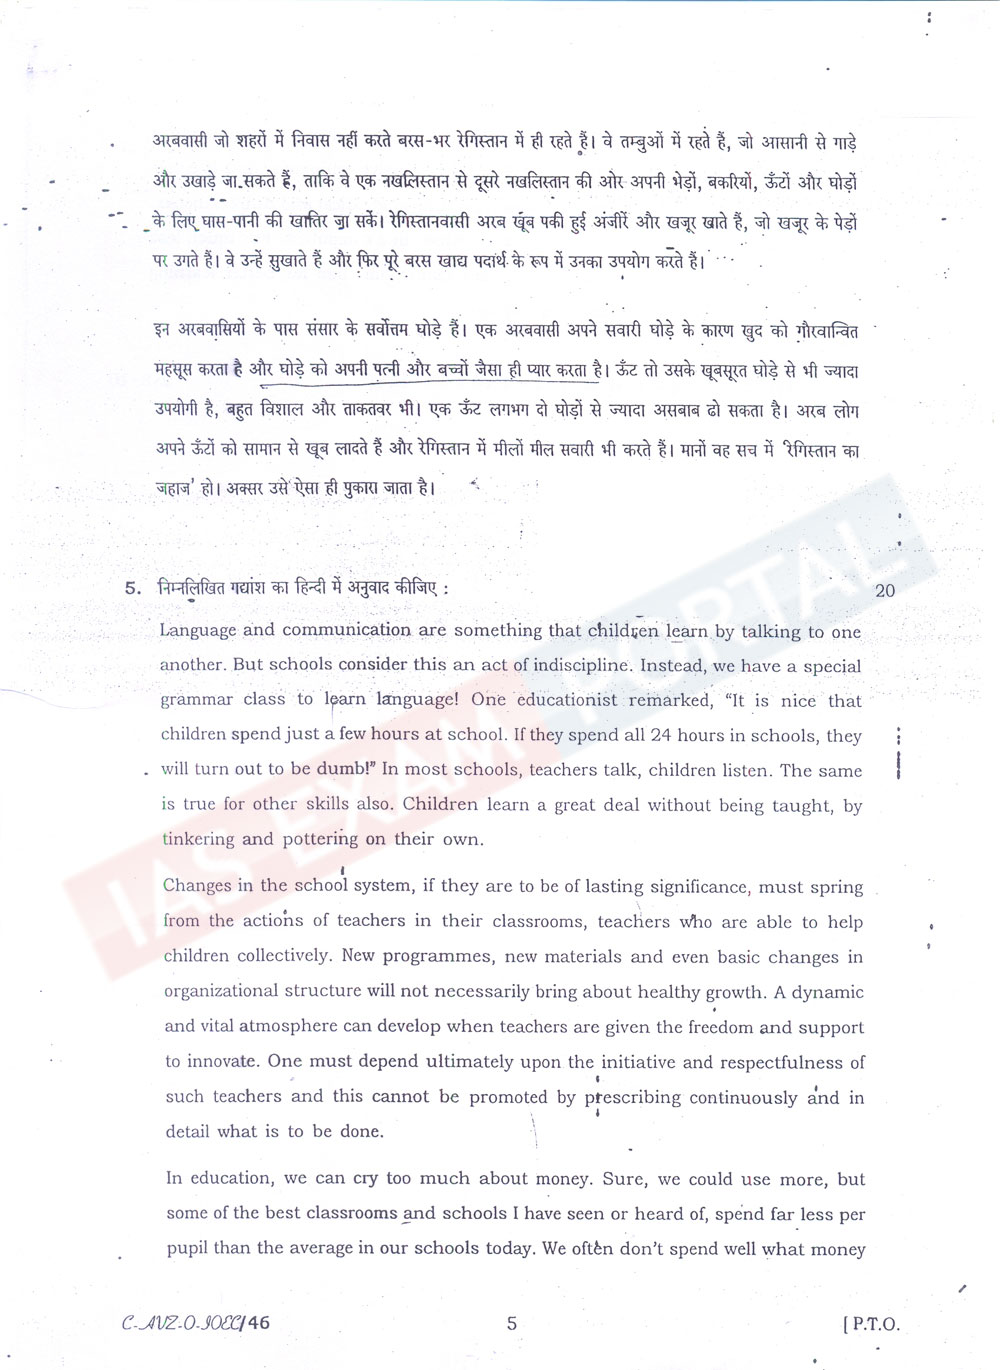 essay paper for ias exam Last 10 years upsc civil services exam previous years papers pdf upsc prelims exam pattern -ias pre previous year paper pdf in hindi medium ias prelims 2016 exam.